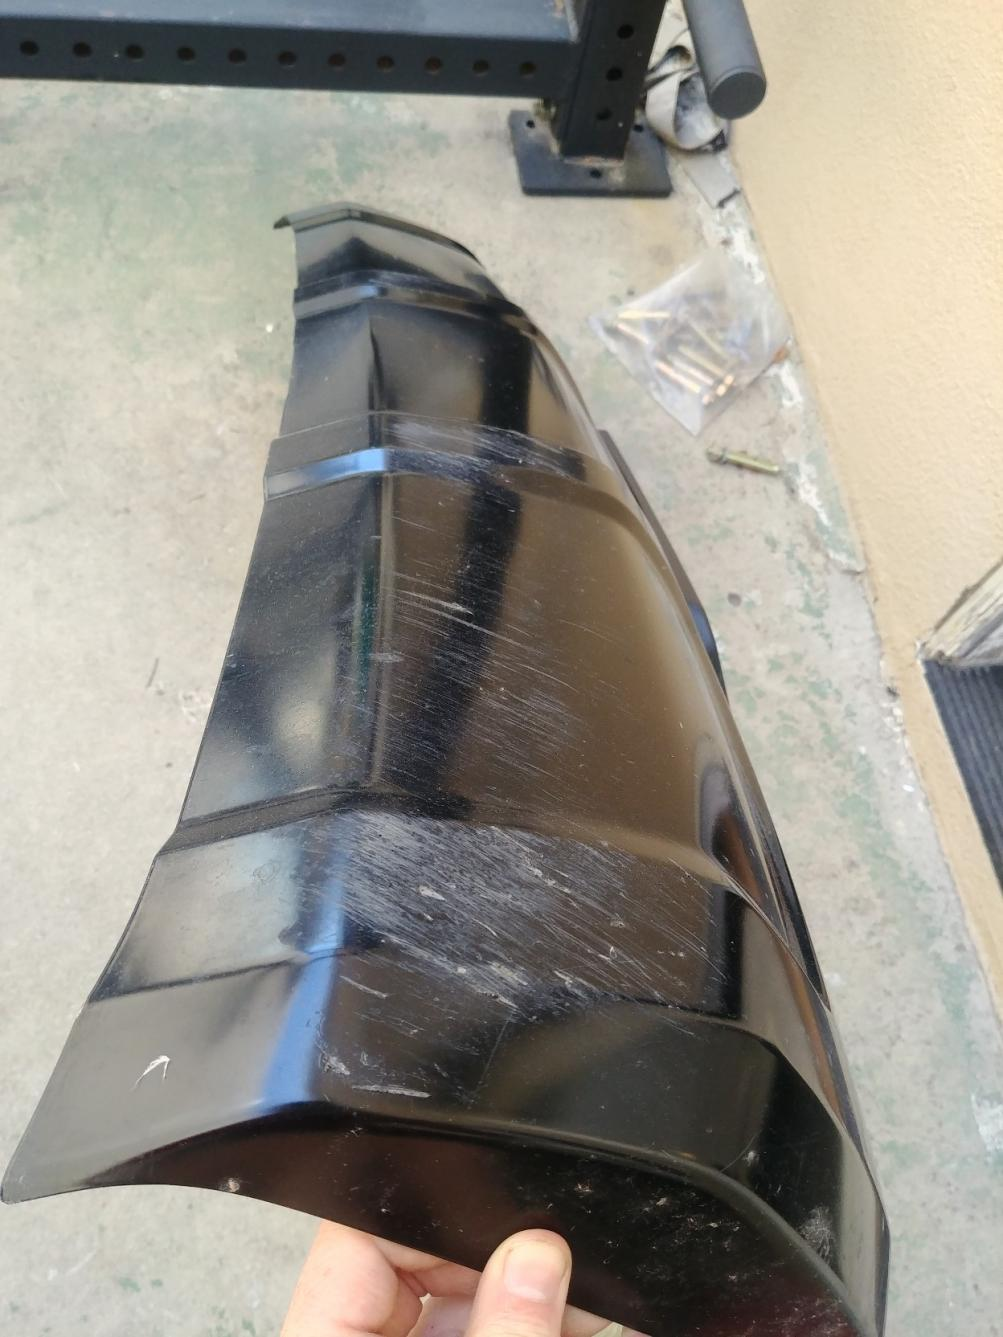 FS TRD Pro front lower valance, Los Angeles-0610191126_hdr-1248x1664-jpg